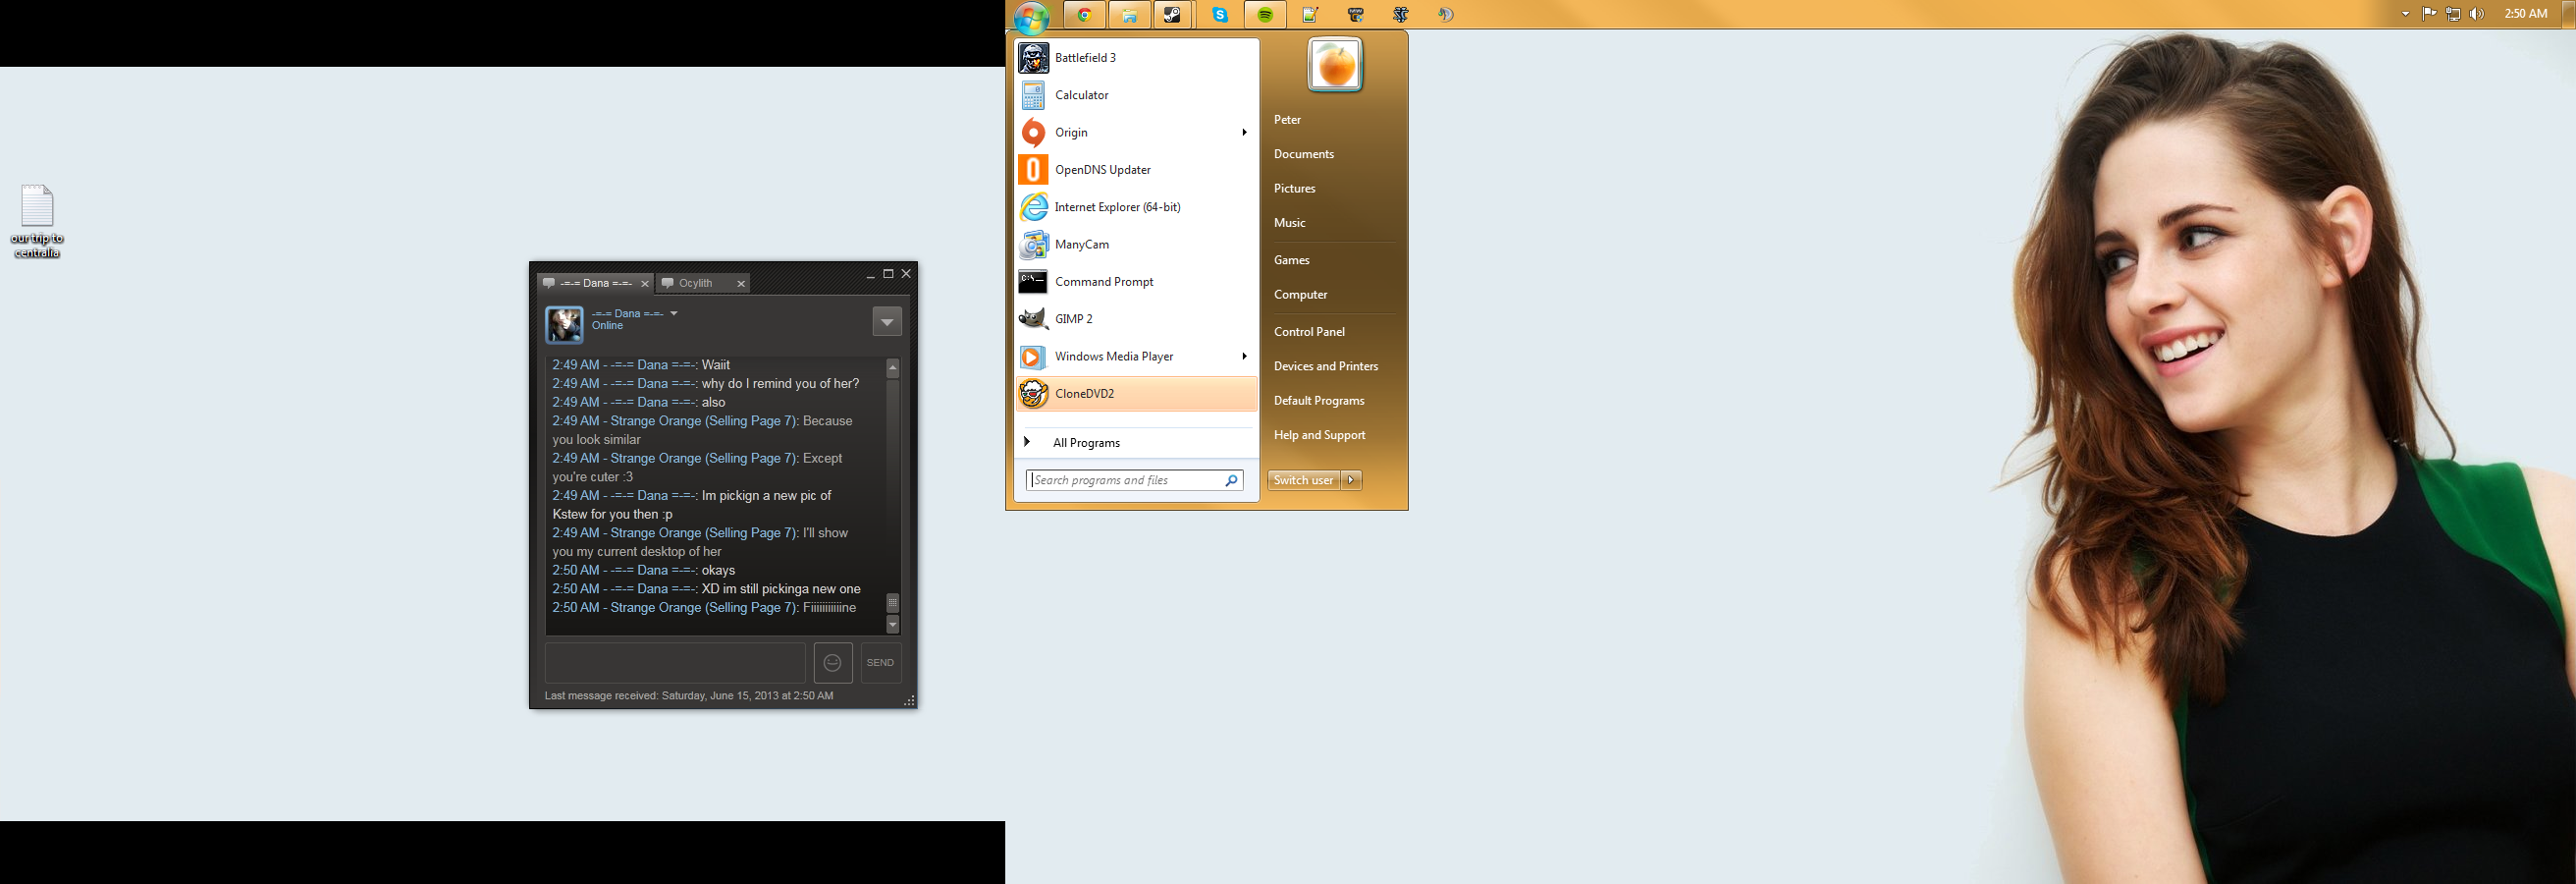 desktop as of 20130615.png